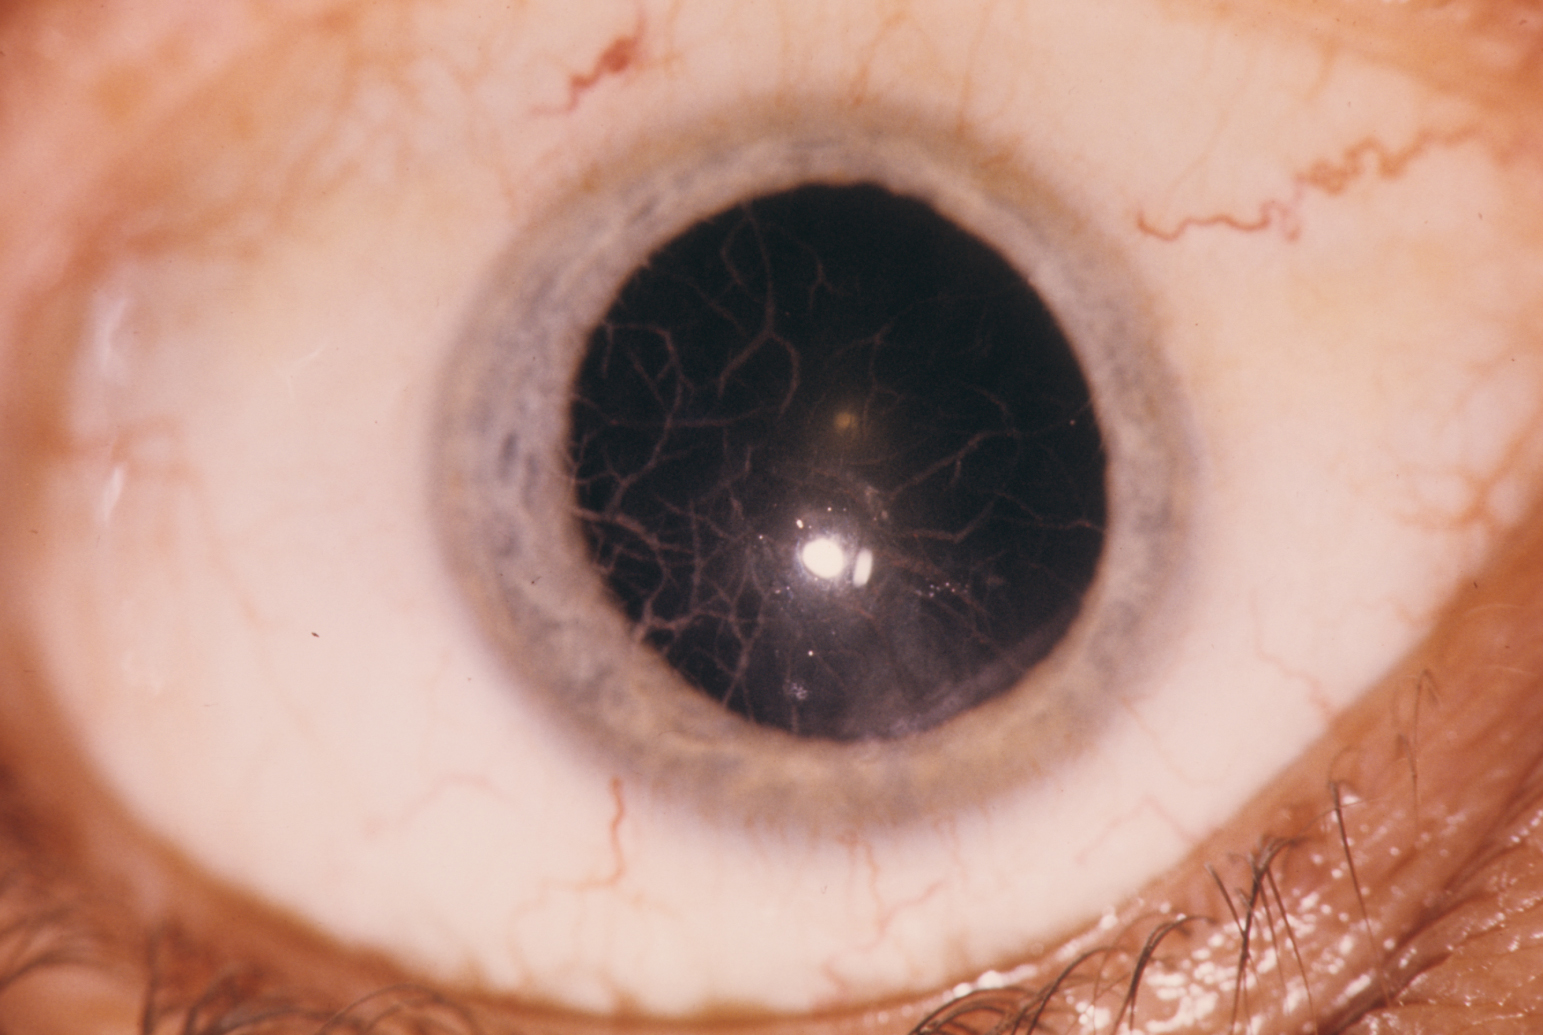 Lattice dystrophy of the cornea